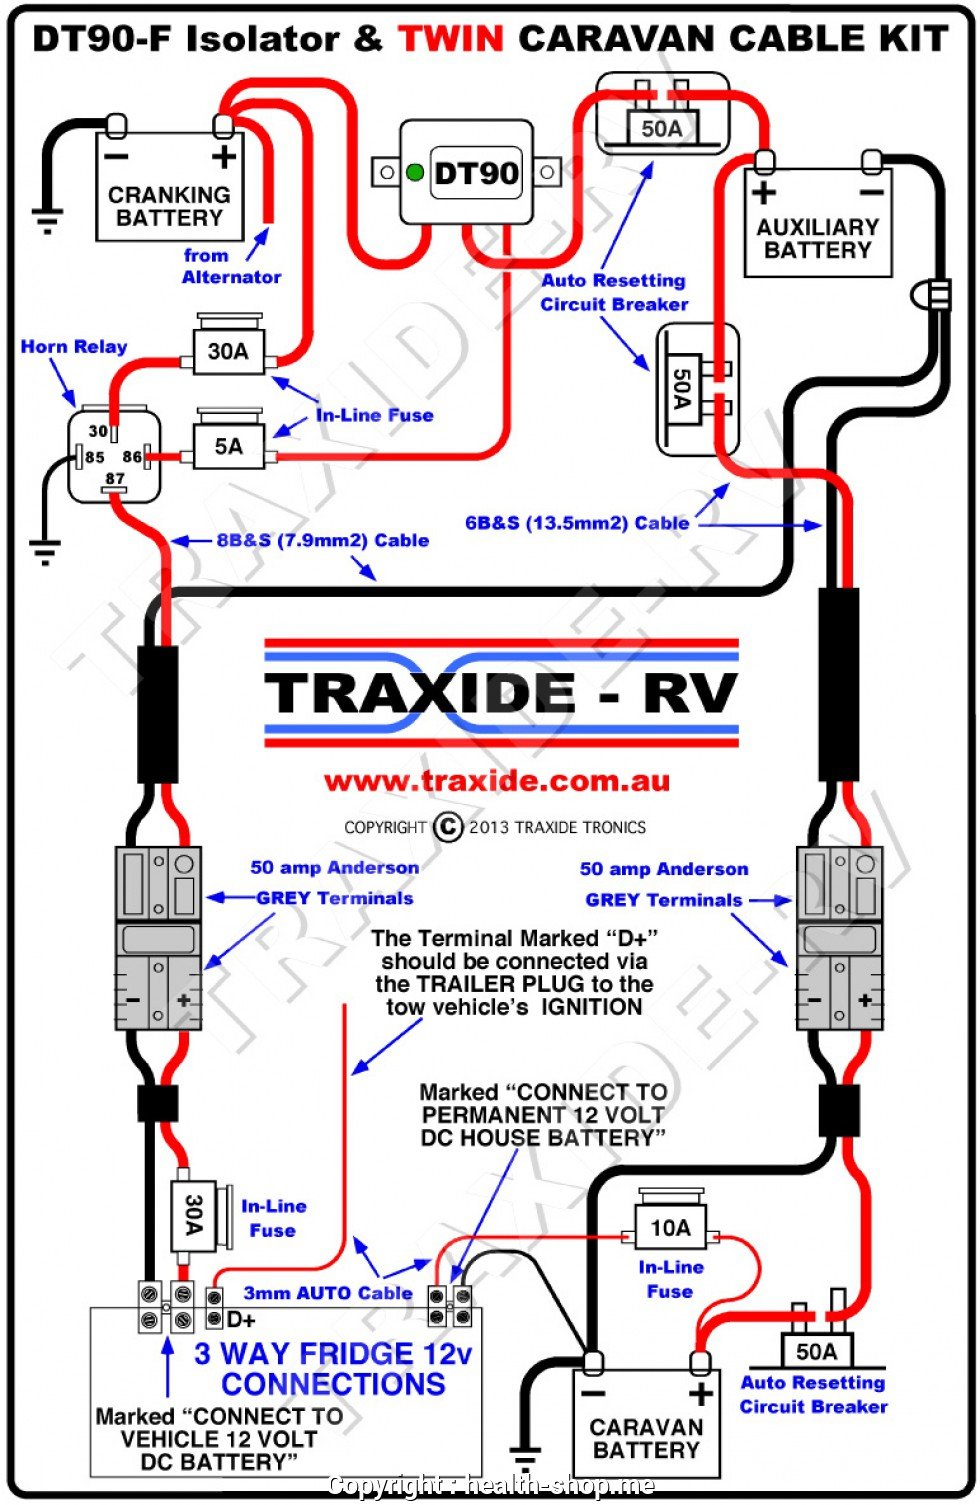 Jayco 7 Pin Trailer Plug Wiring Diagram - Wiring Diagram Write